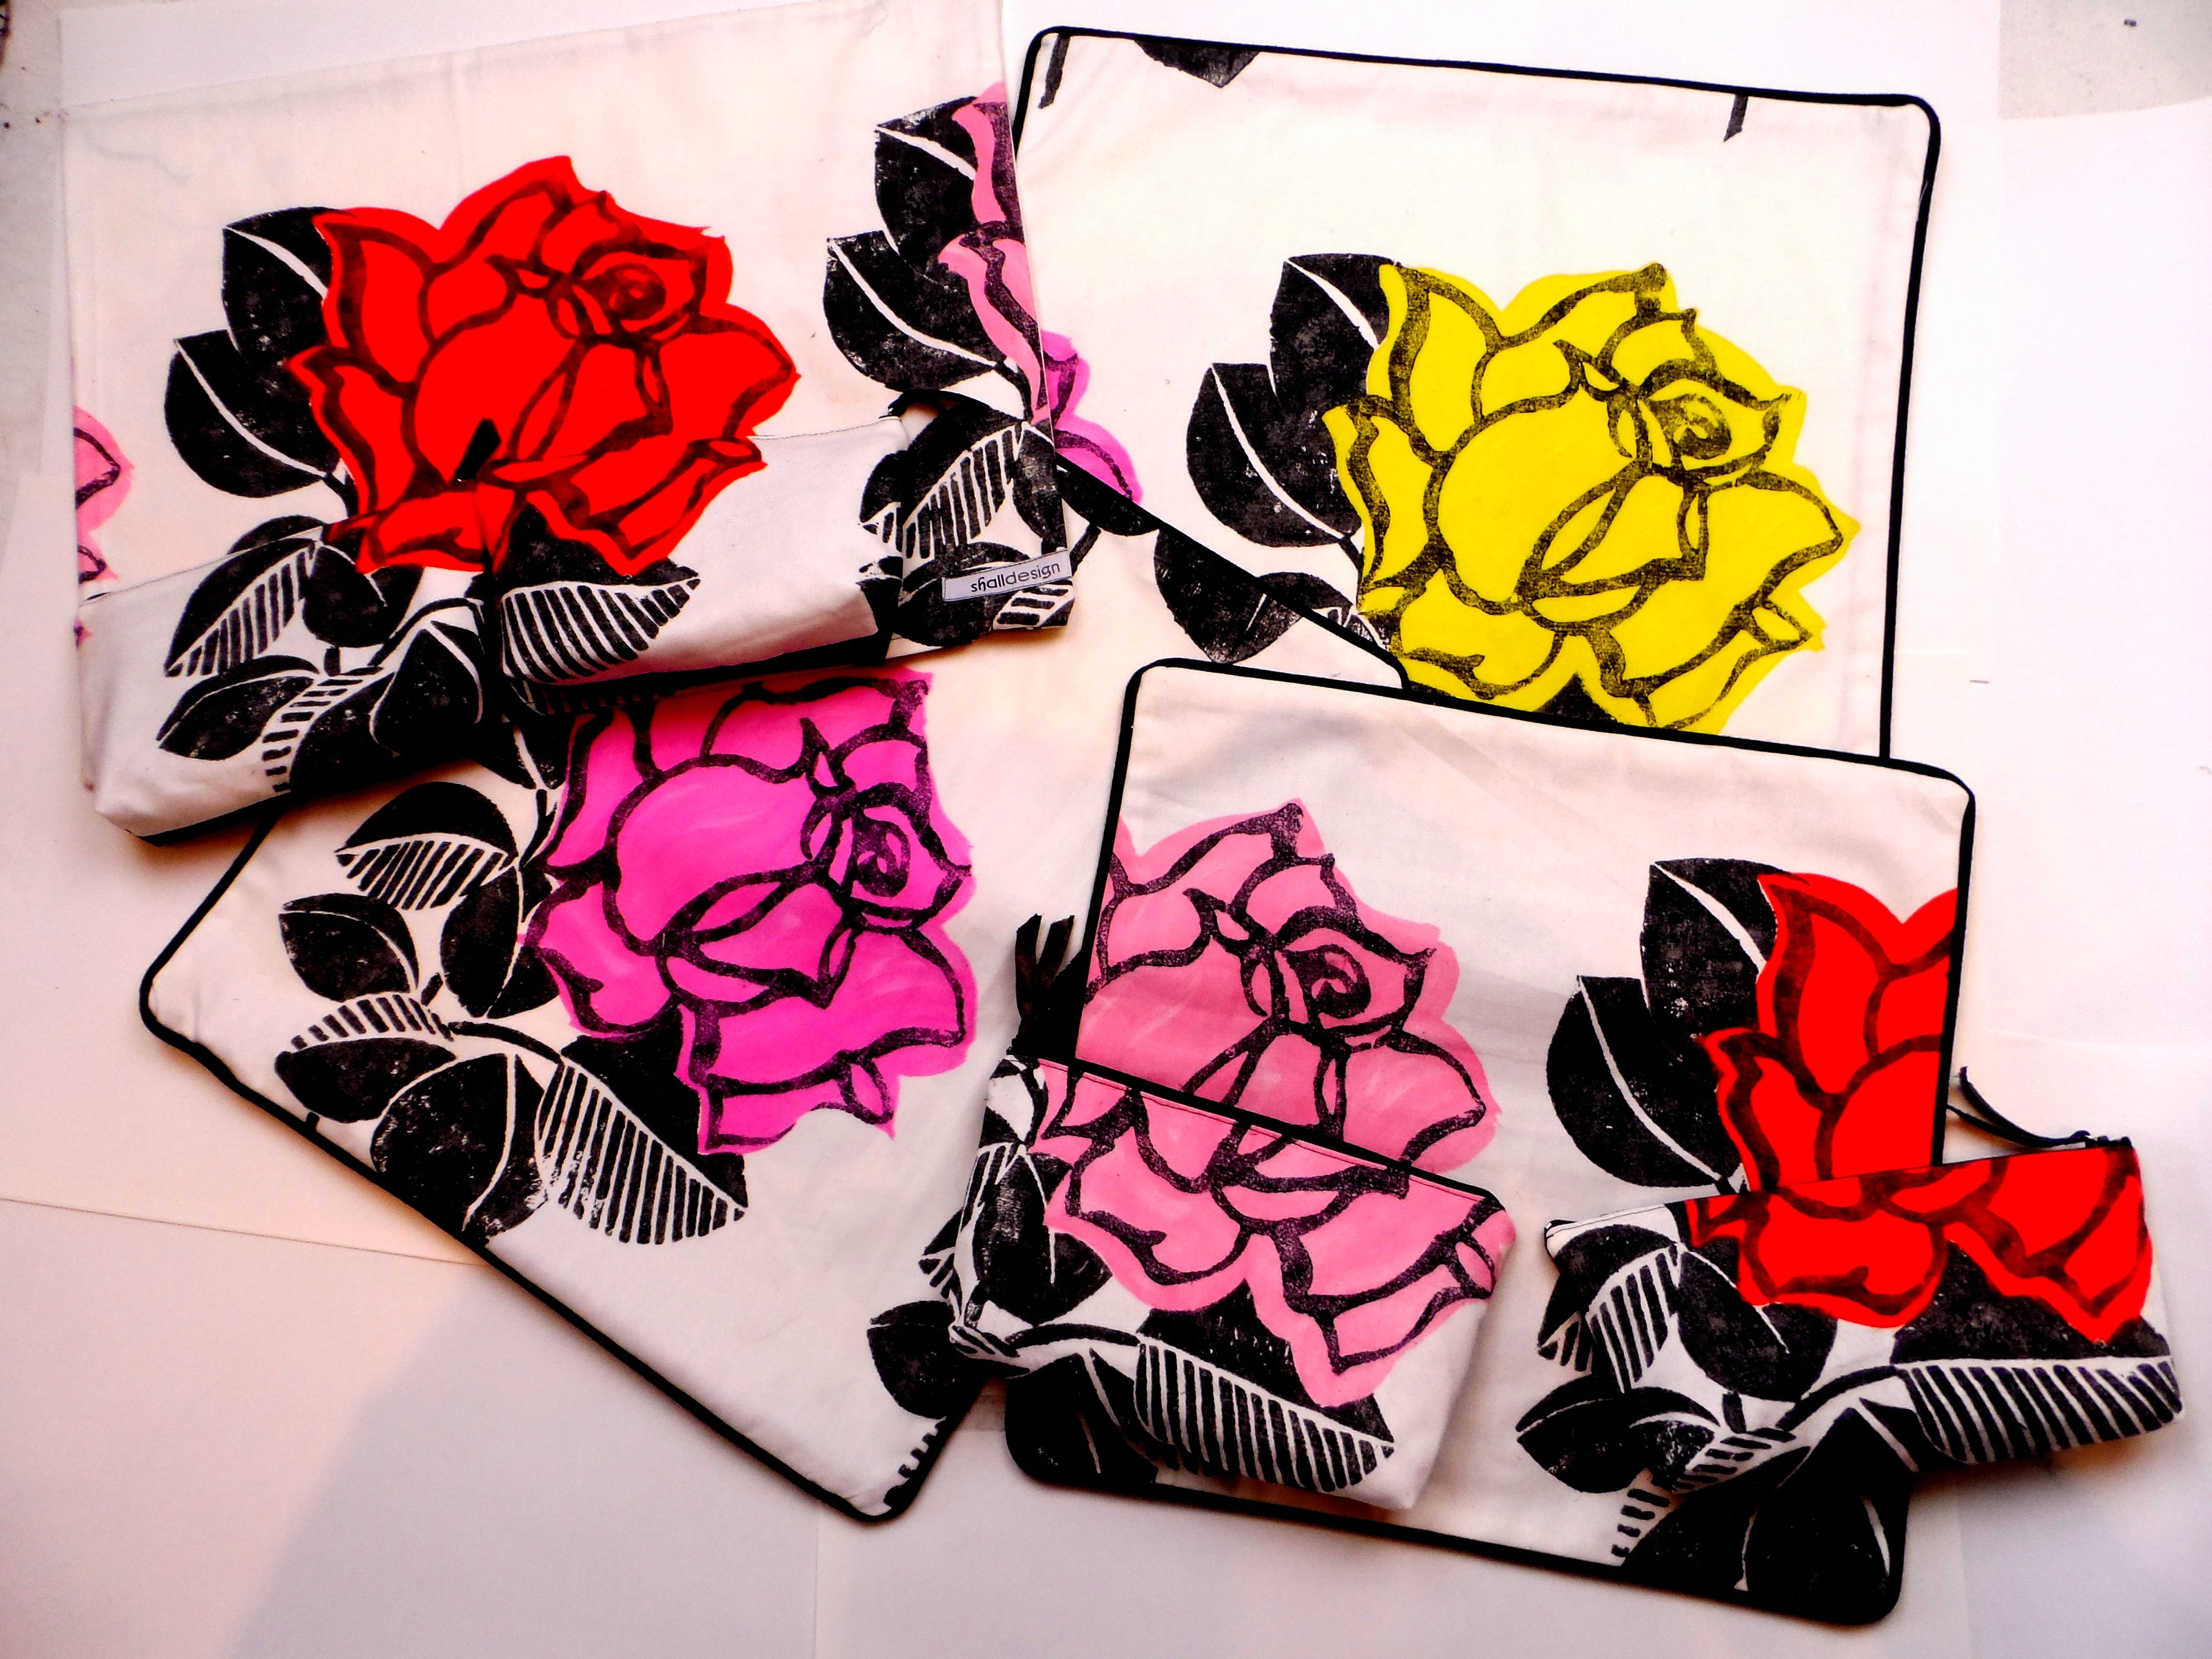 Collection of Designers Guild cushion covers with camouflaged purses as well!